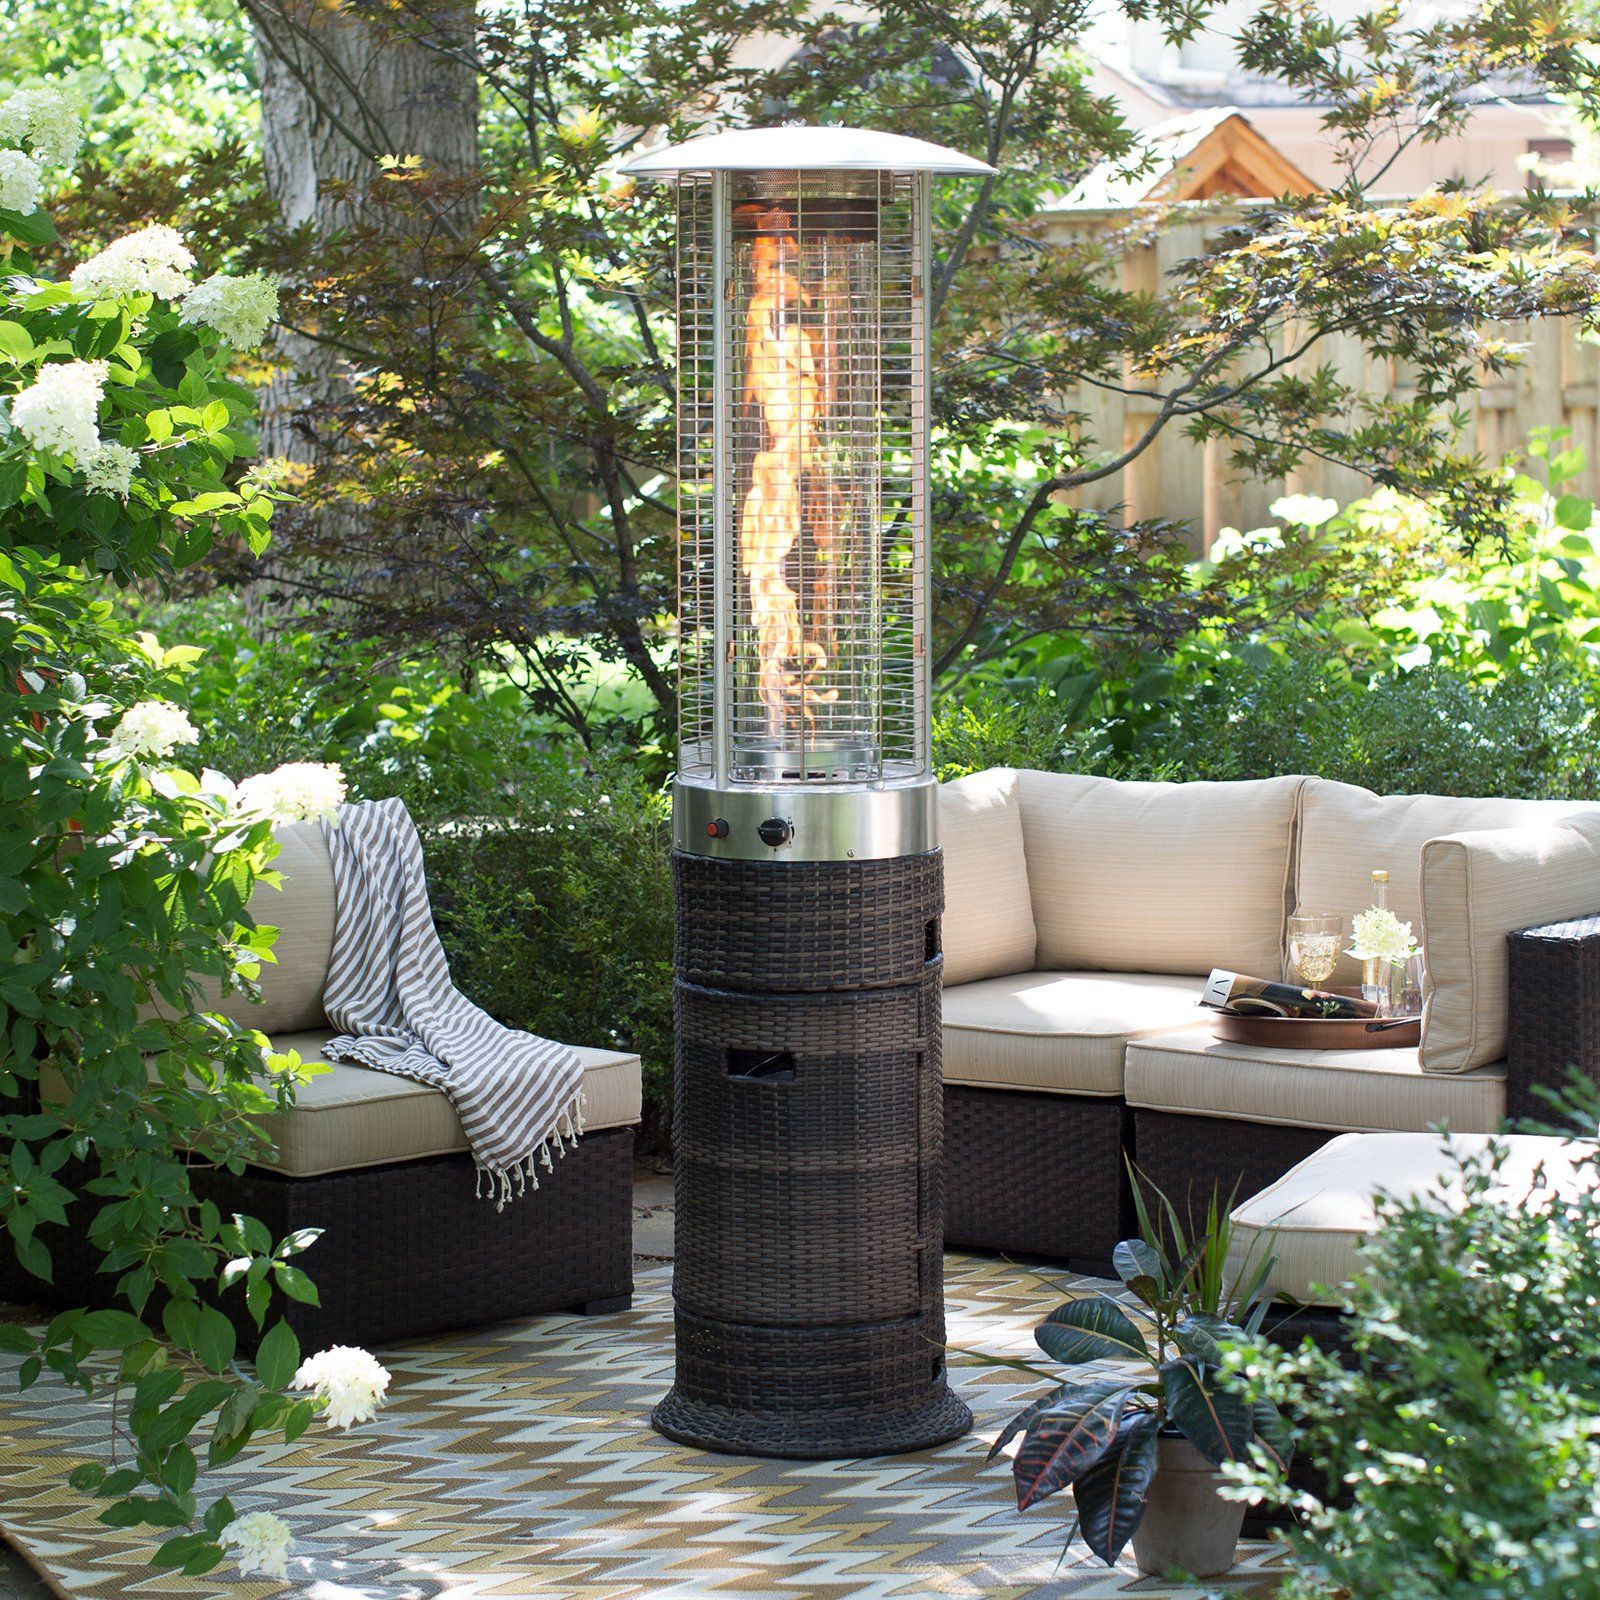 Red ember wicker patio heater from hayneedle garden